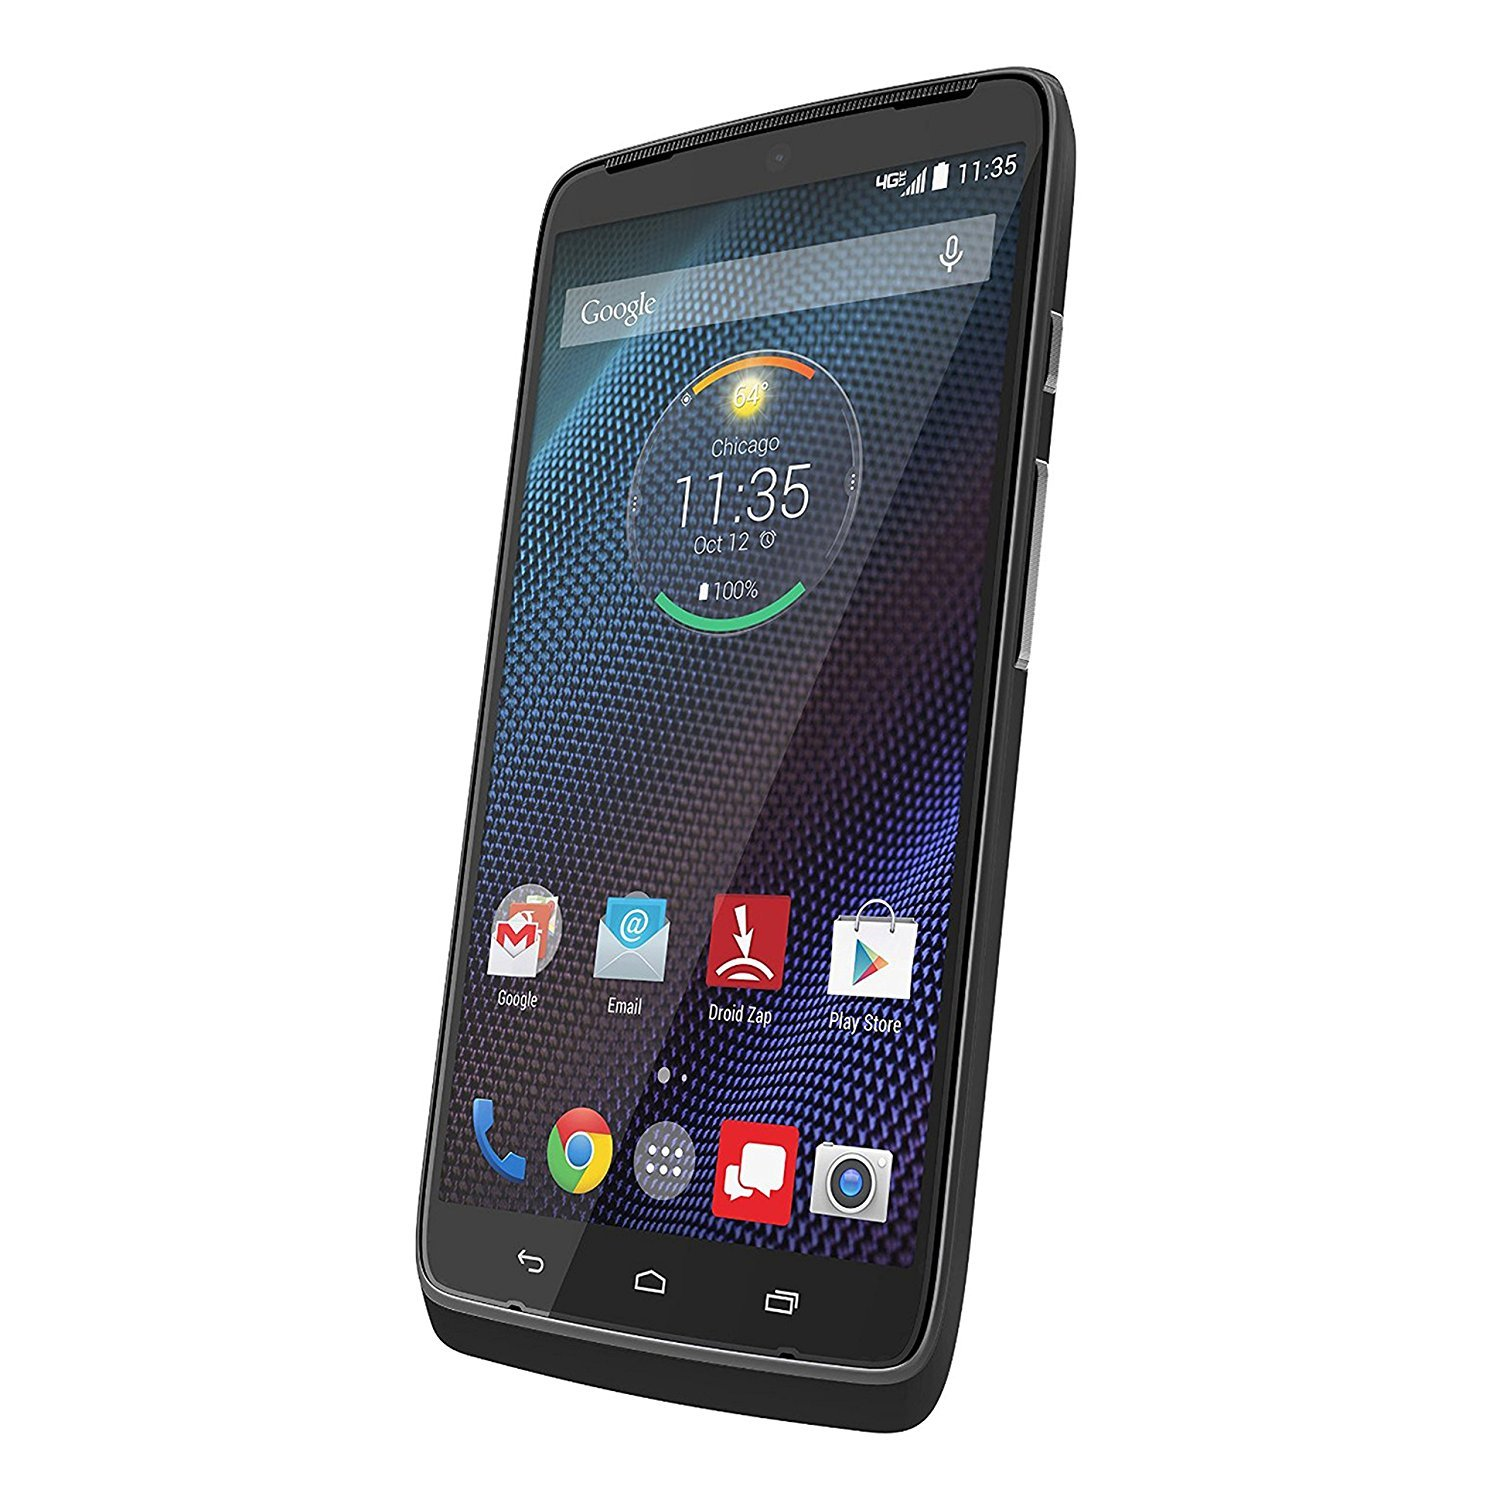 Motorola Droid Turbo XT1254 - 32GB Android Smartphone - Black w/ 1 YEAR EXTENDED CPS LIMITED WARRANTY (Certified Refurbished)